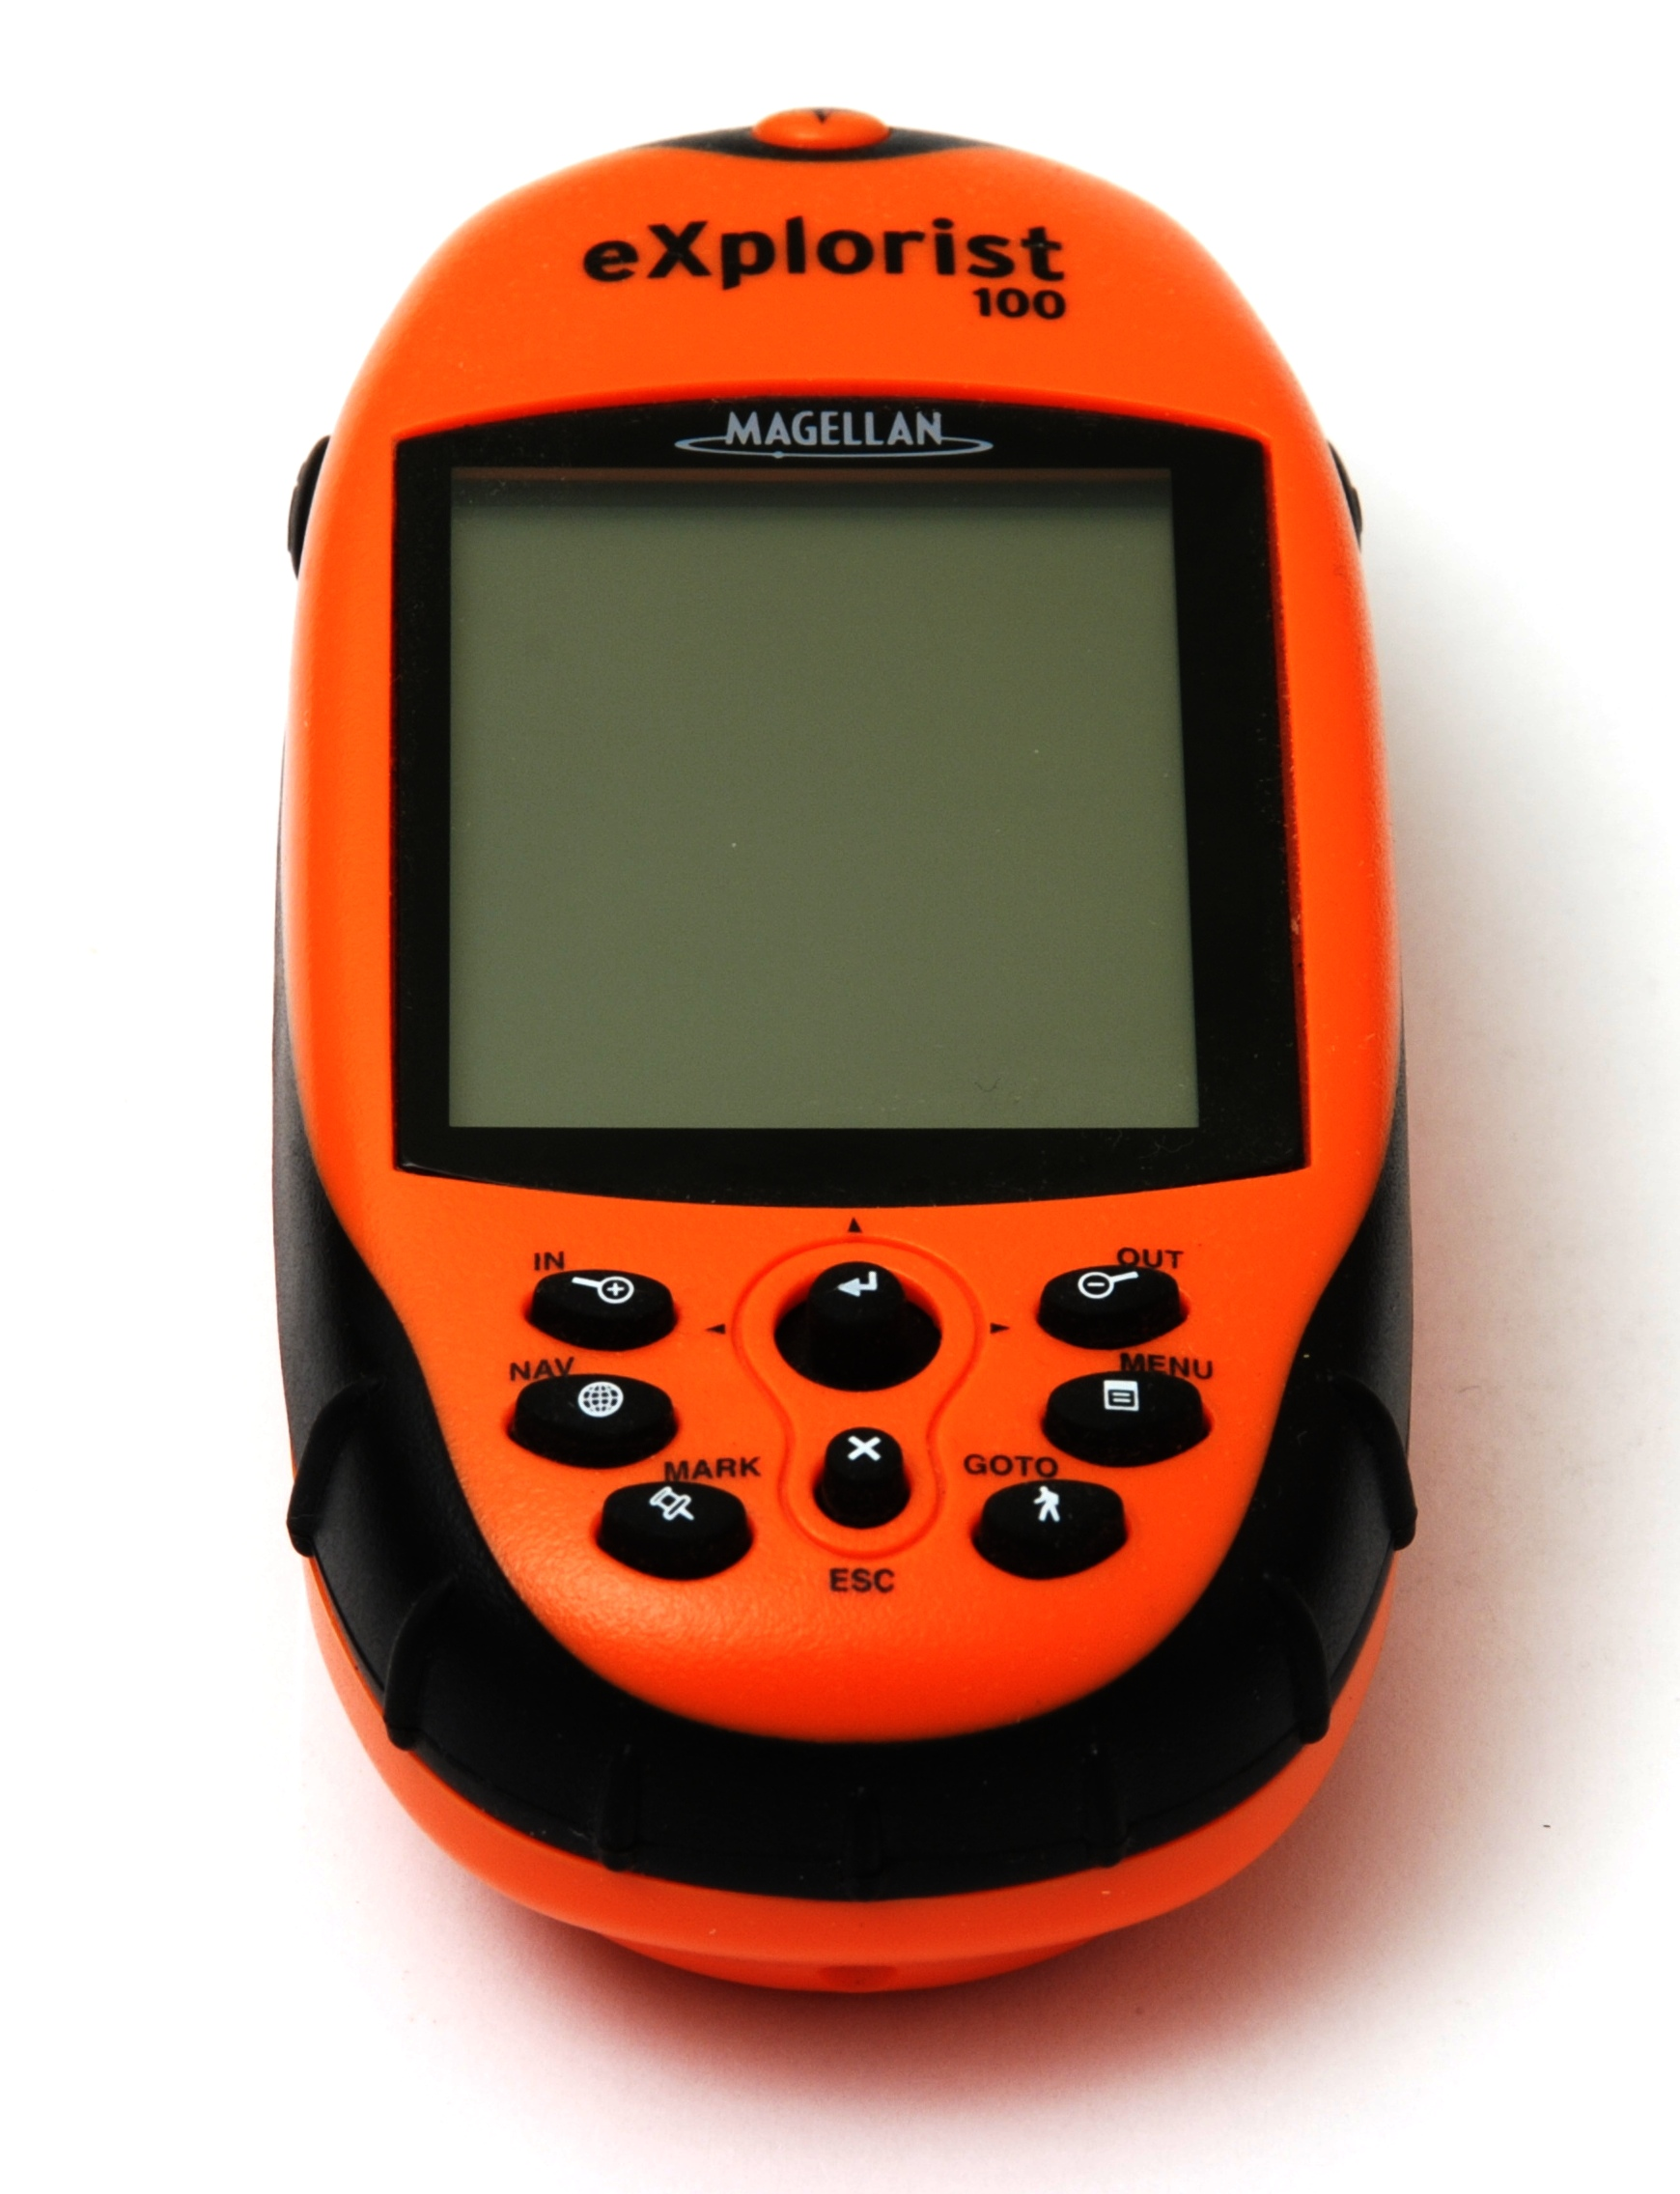 Build In Gps Navigation Function Windows Ce